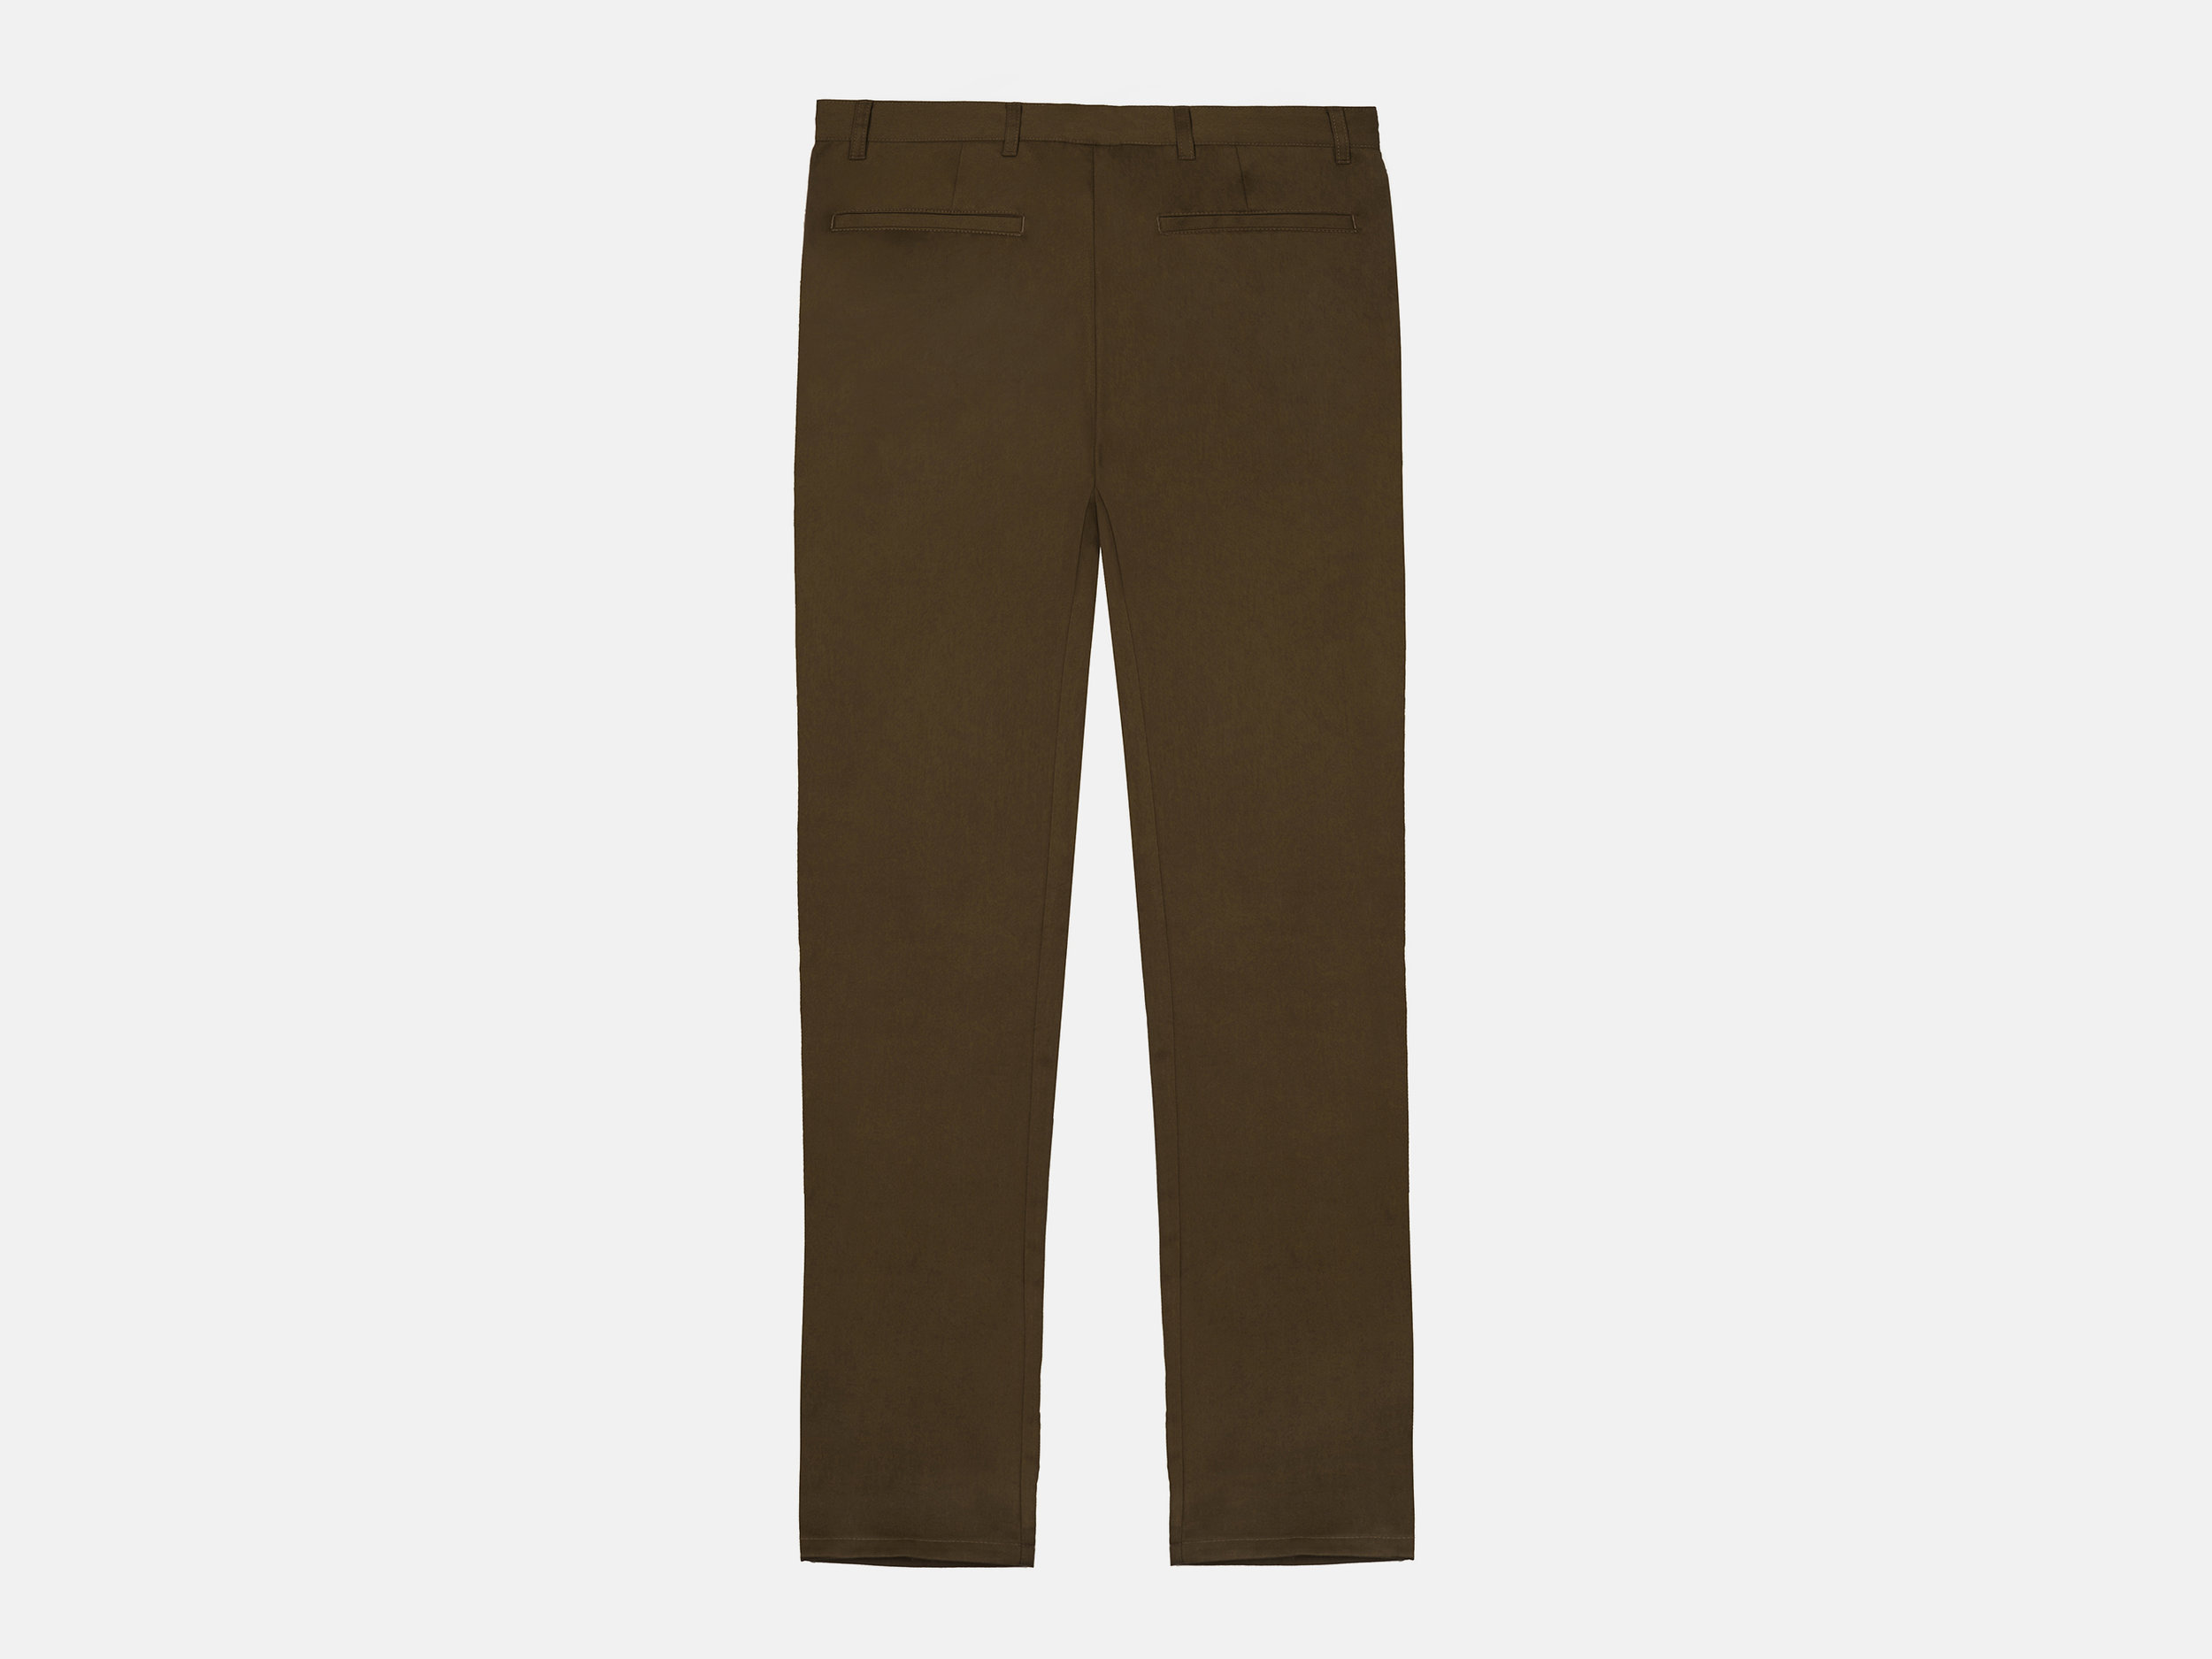 ITEM-09_BROWN_02.jpg